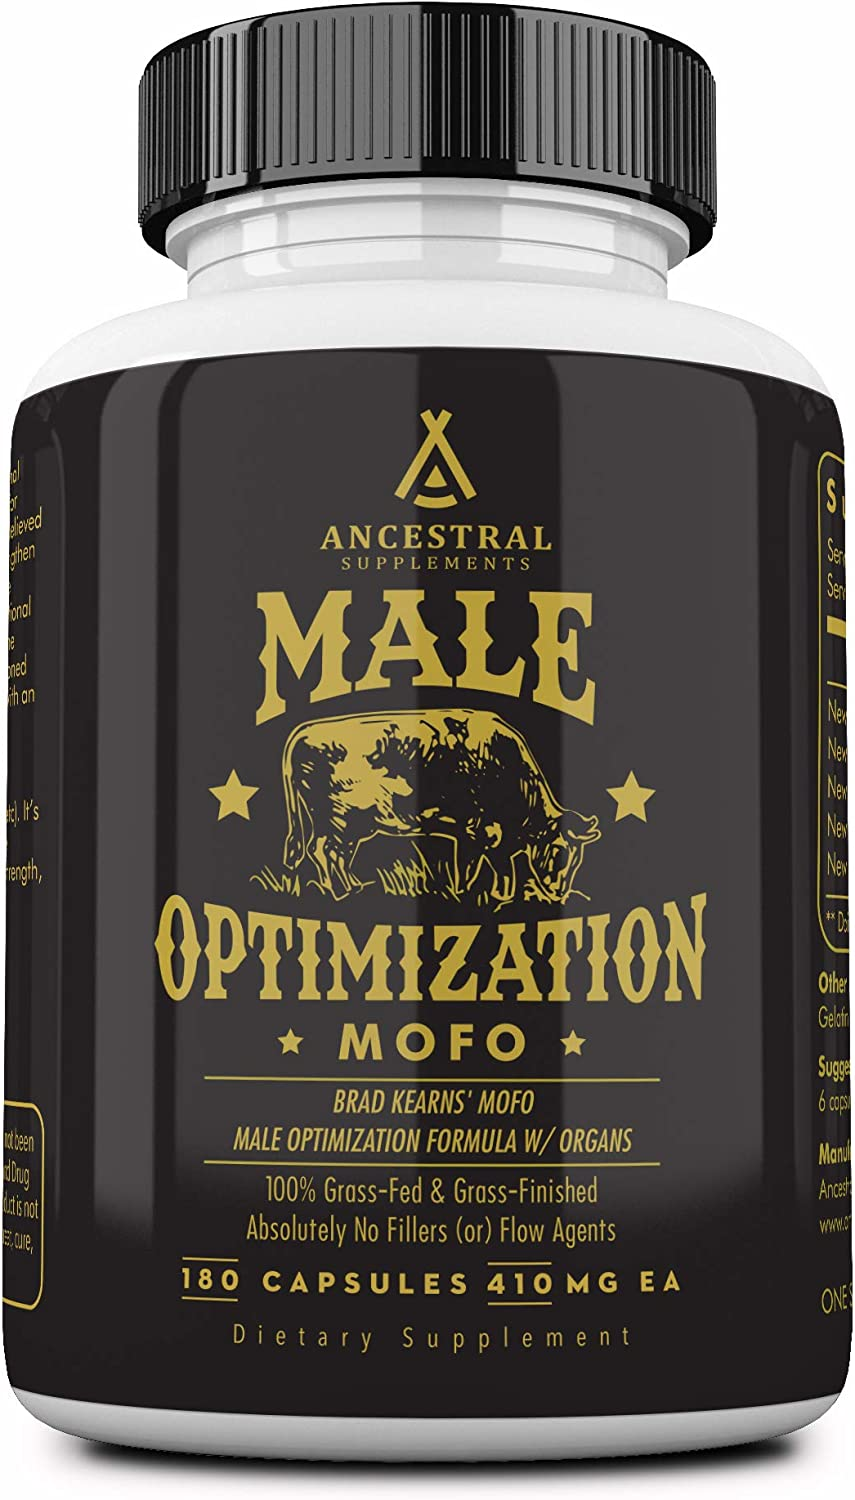 Mofo is Ancestral Supplements Male Optimization Formula W/Organs (Mofo) — Supports Testosterone, Prostate and Heart Health (180 Capsules)